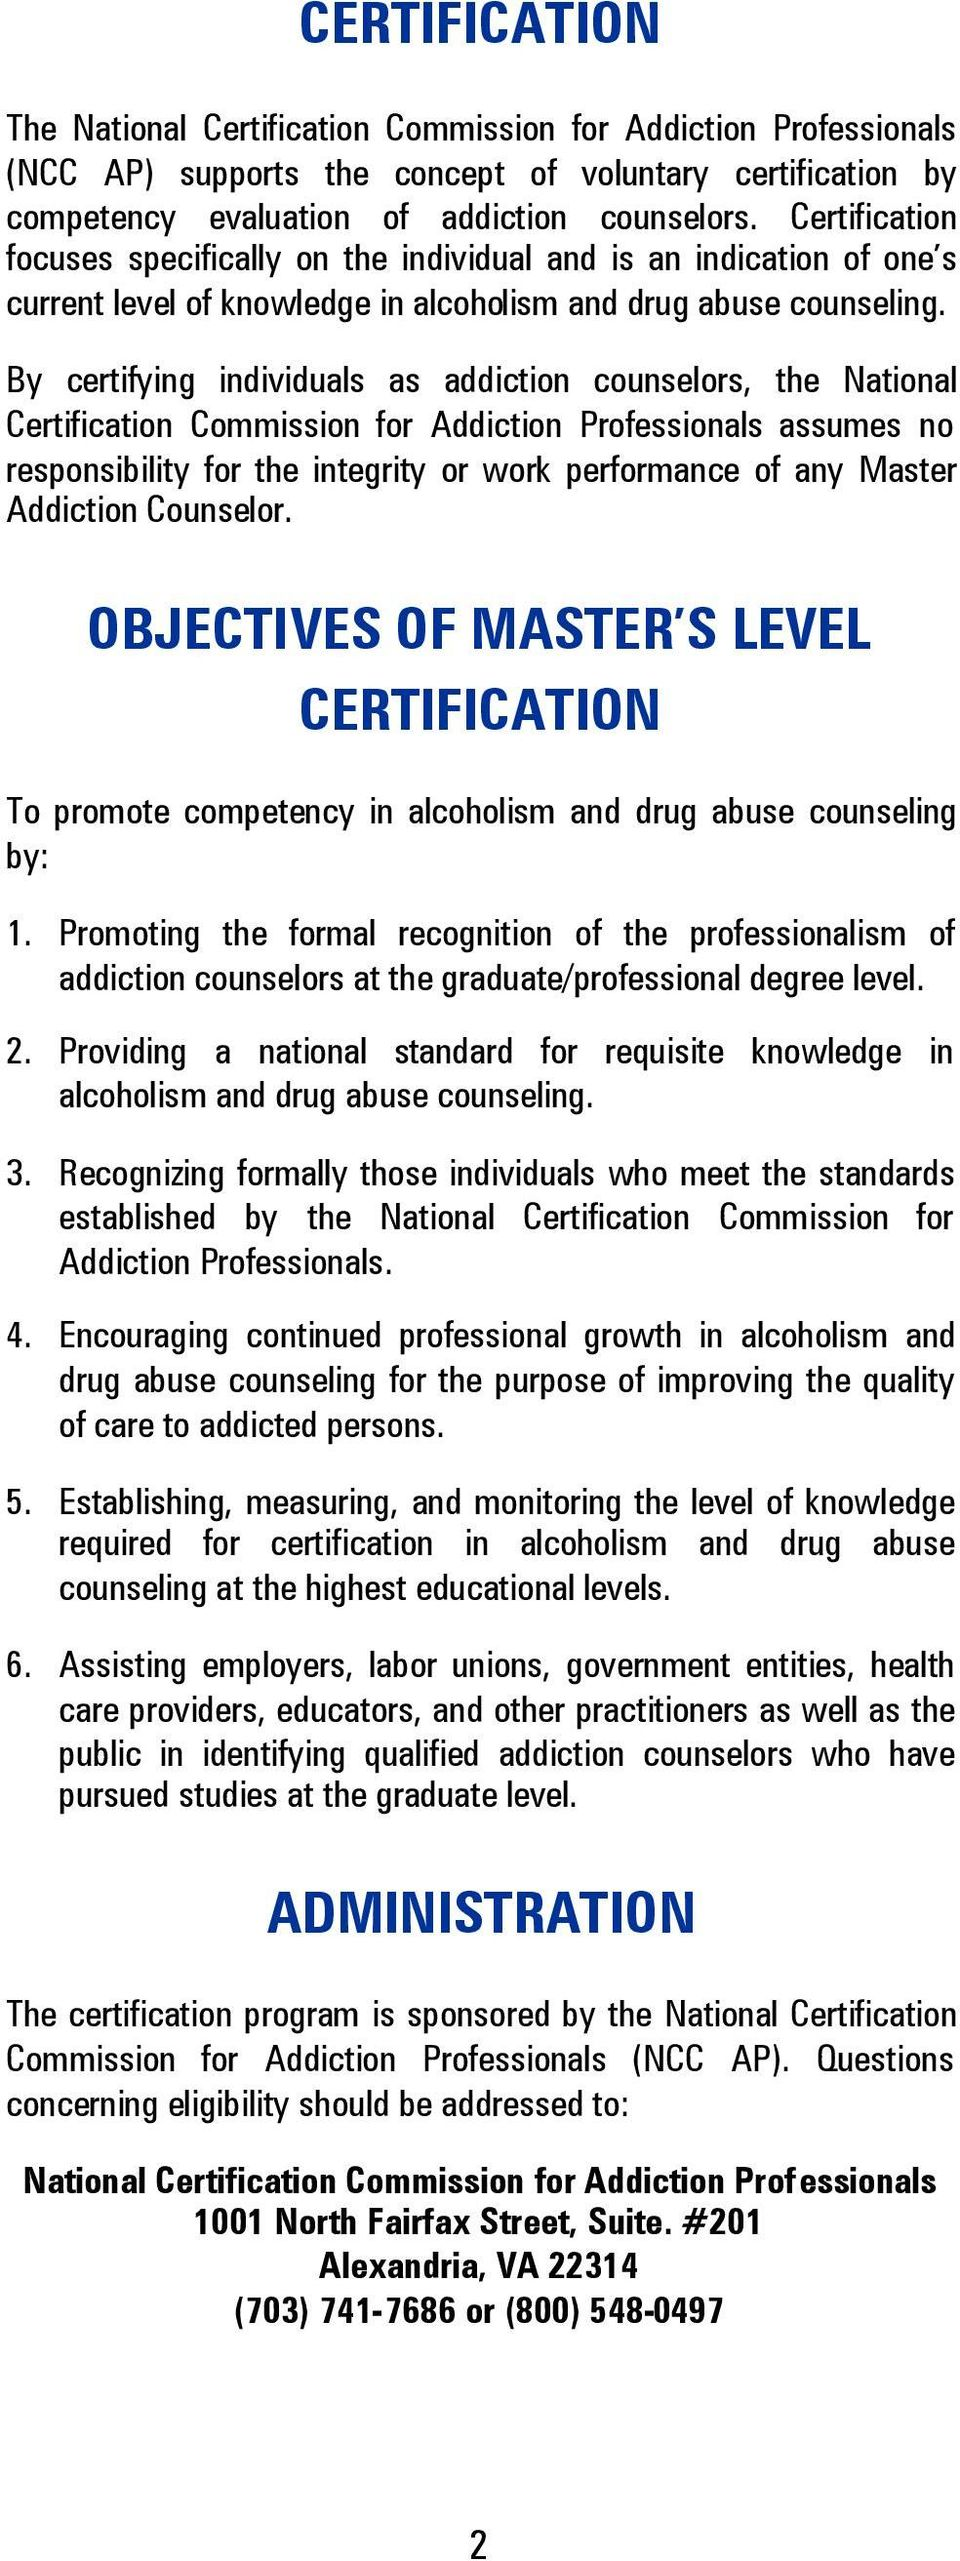 By certifying individuals as addiction counselors, the National Certification Commission for Addiction Professionals assumes no responsibility for the integrity or work performance of any Master